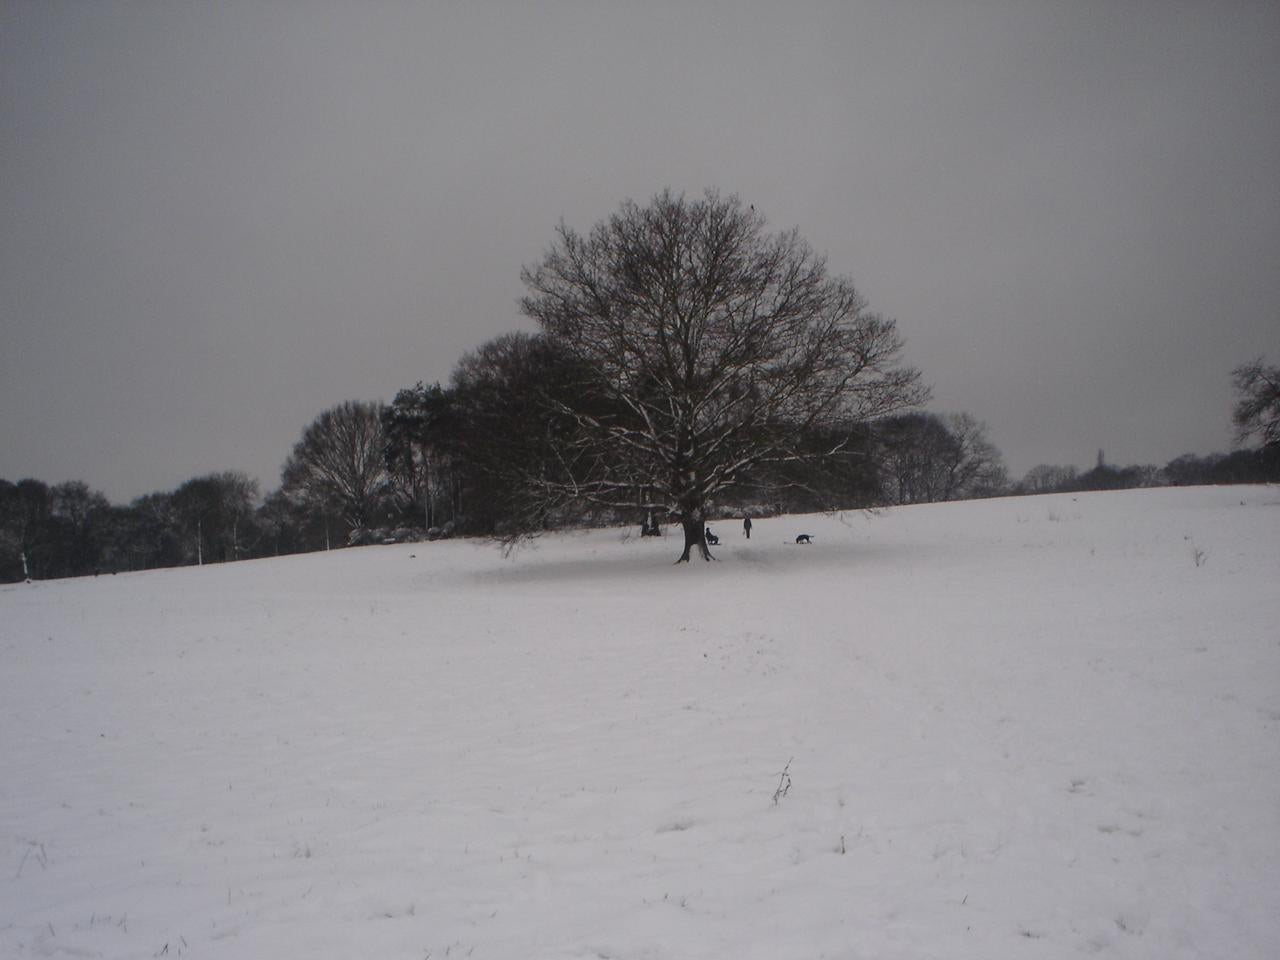 Tormenta de nieve en Parque de Hampstead Heath